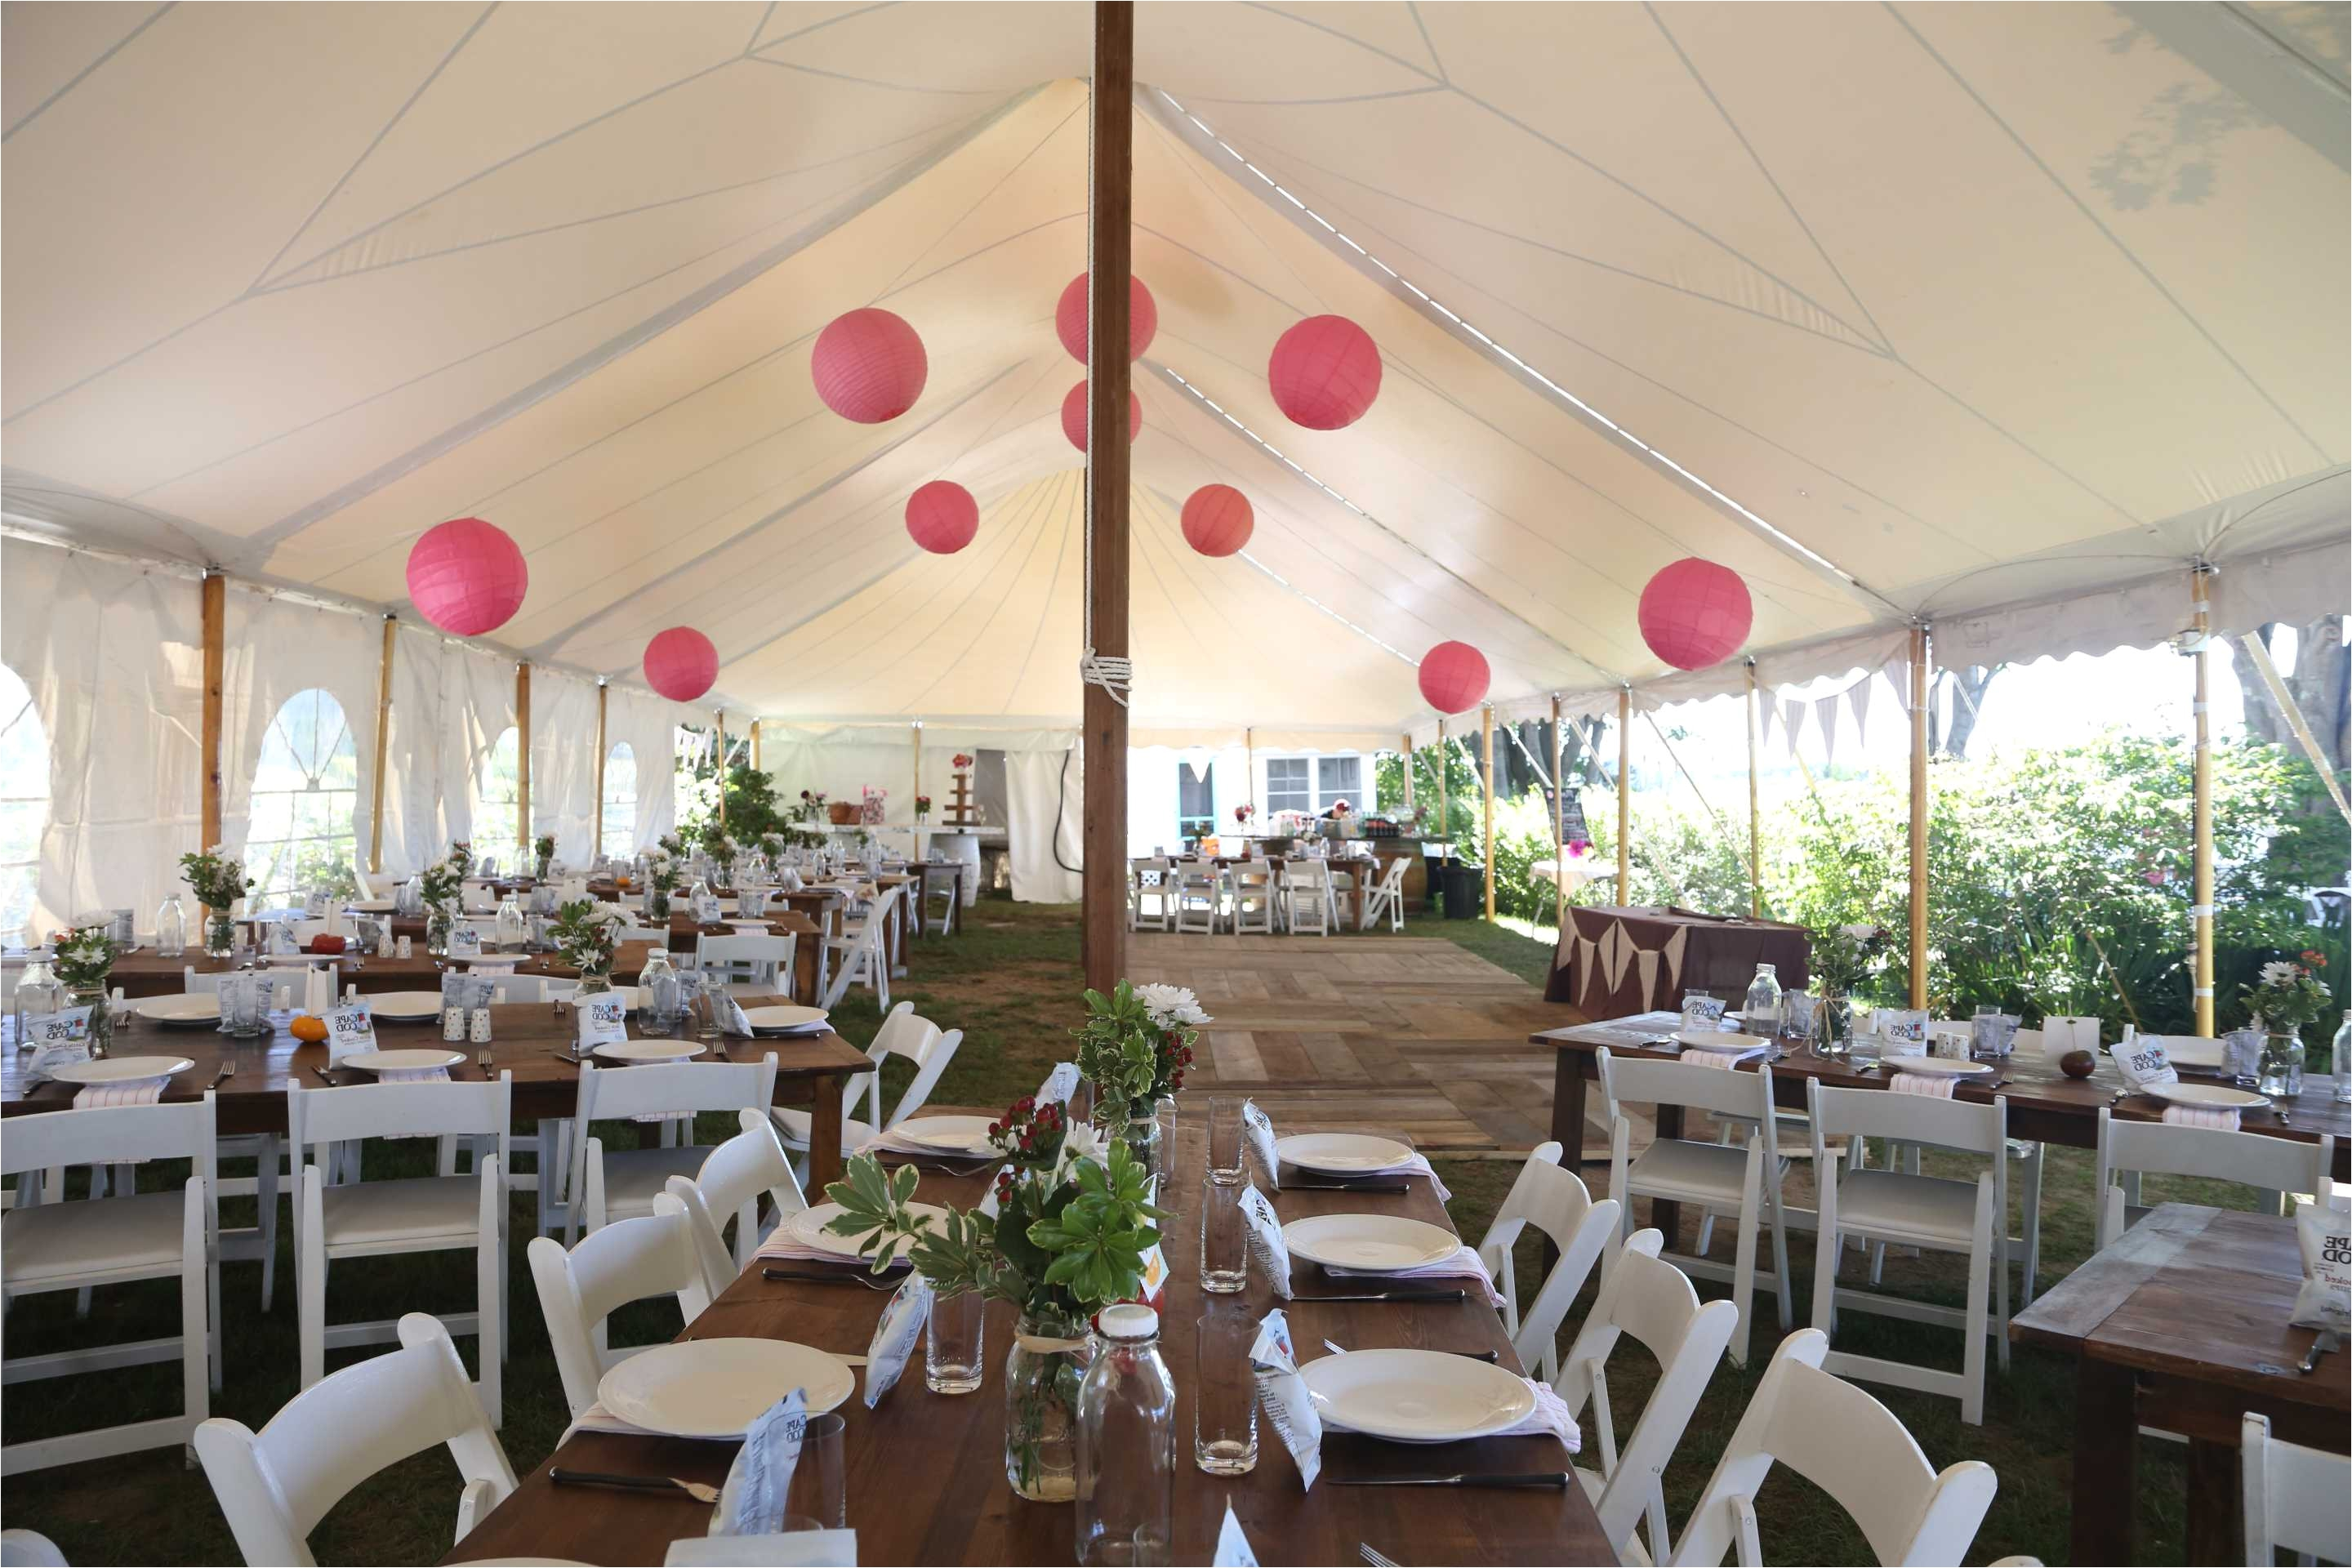 Tent Table and Chair Rentals Near Me Wedding Wedding Tent Rentals Lovely Awesome Table and Tent Rentals